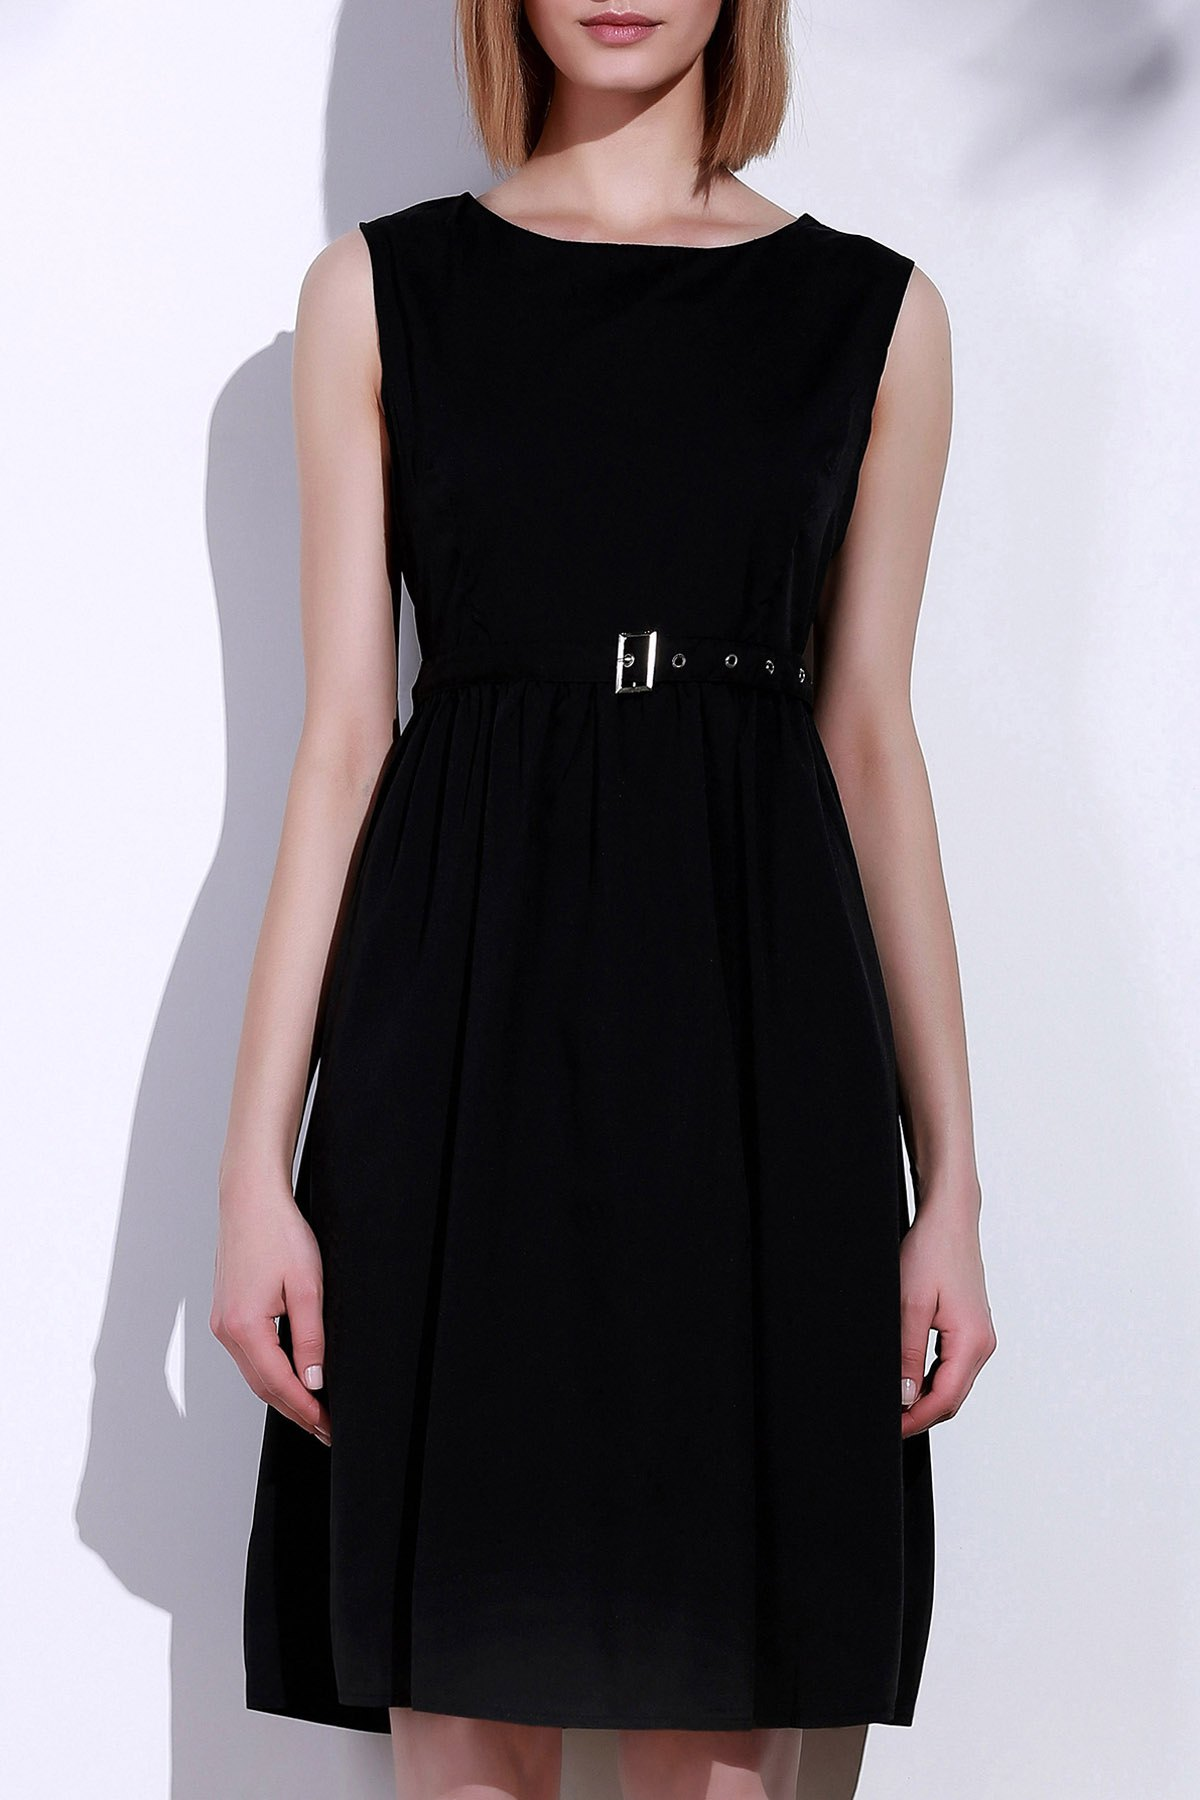 Women's Retro Style Sleeveless Solid Color Dress - BLACK S